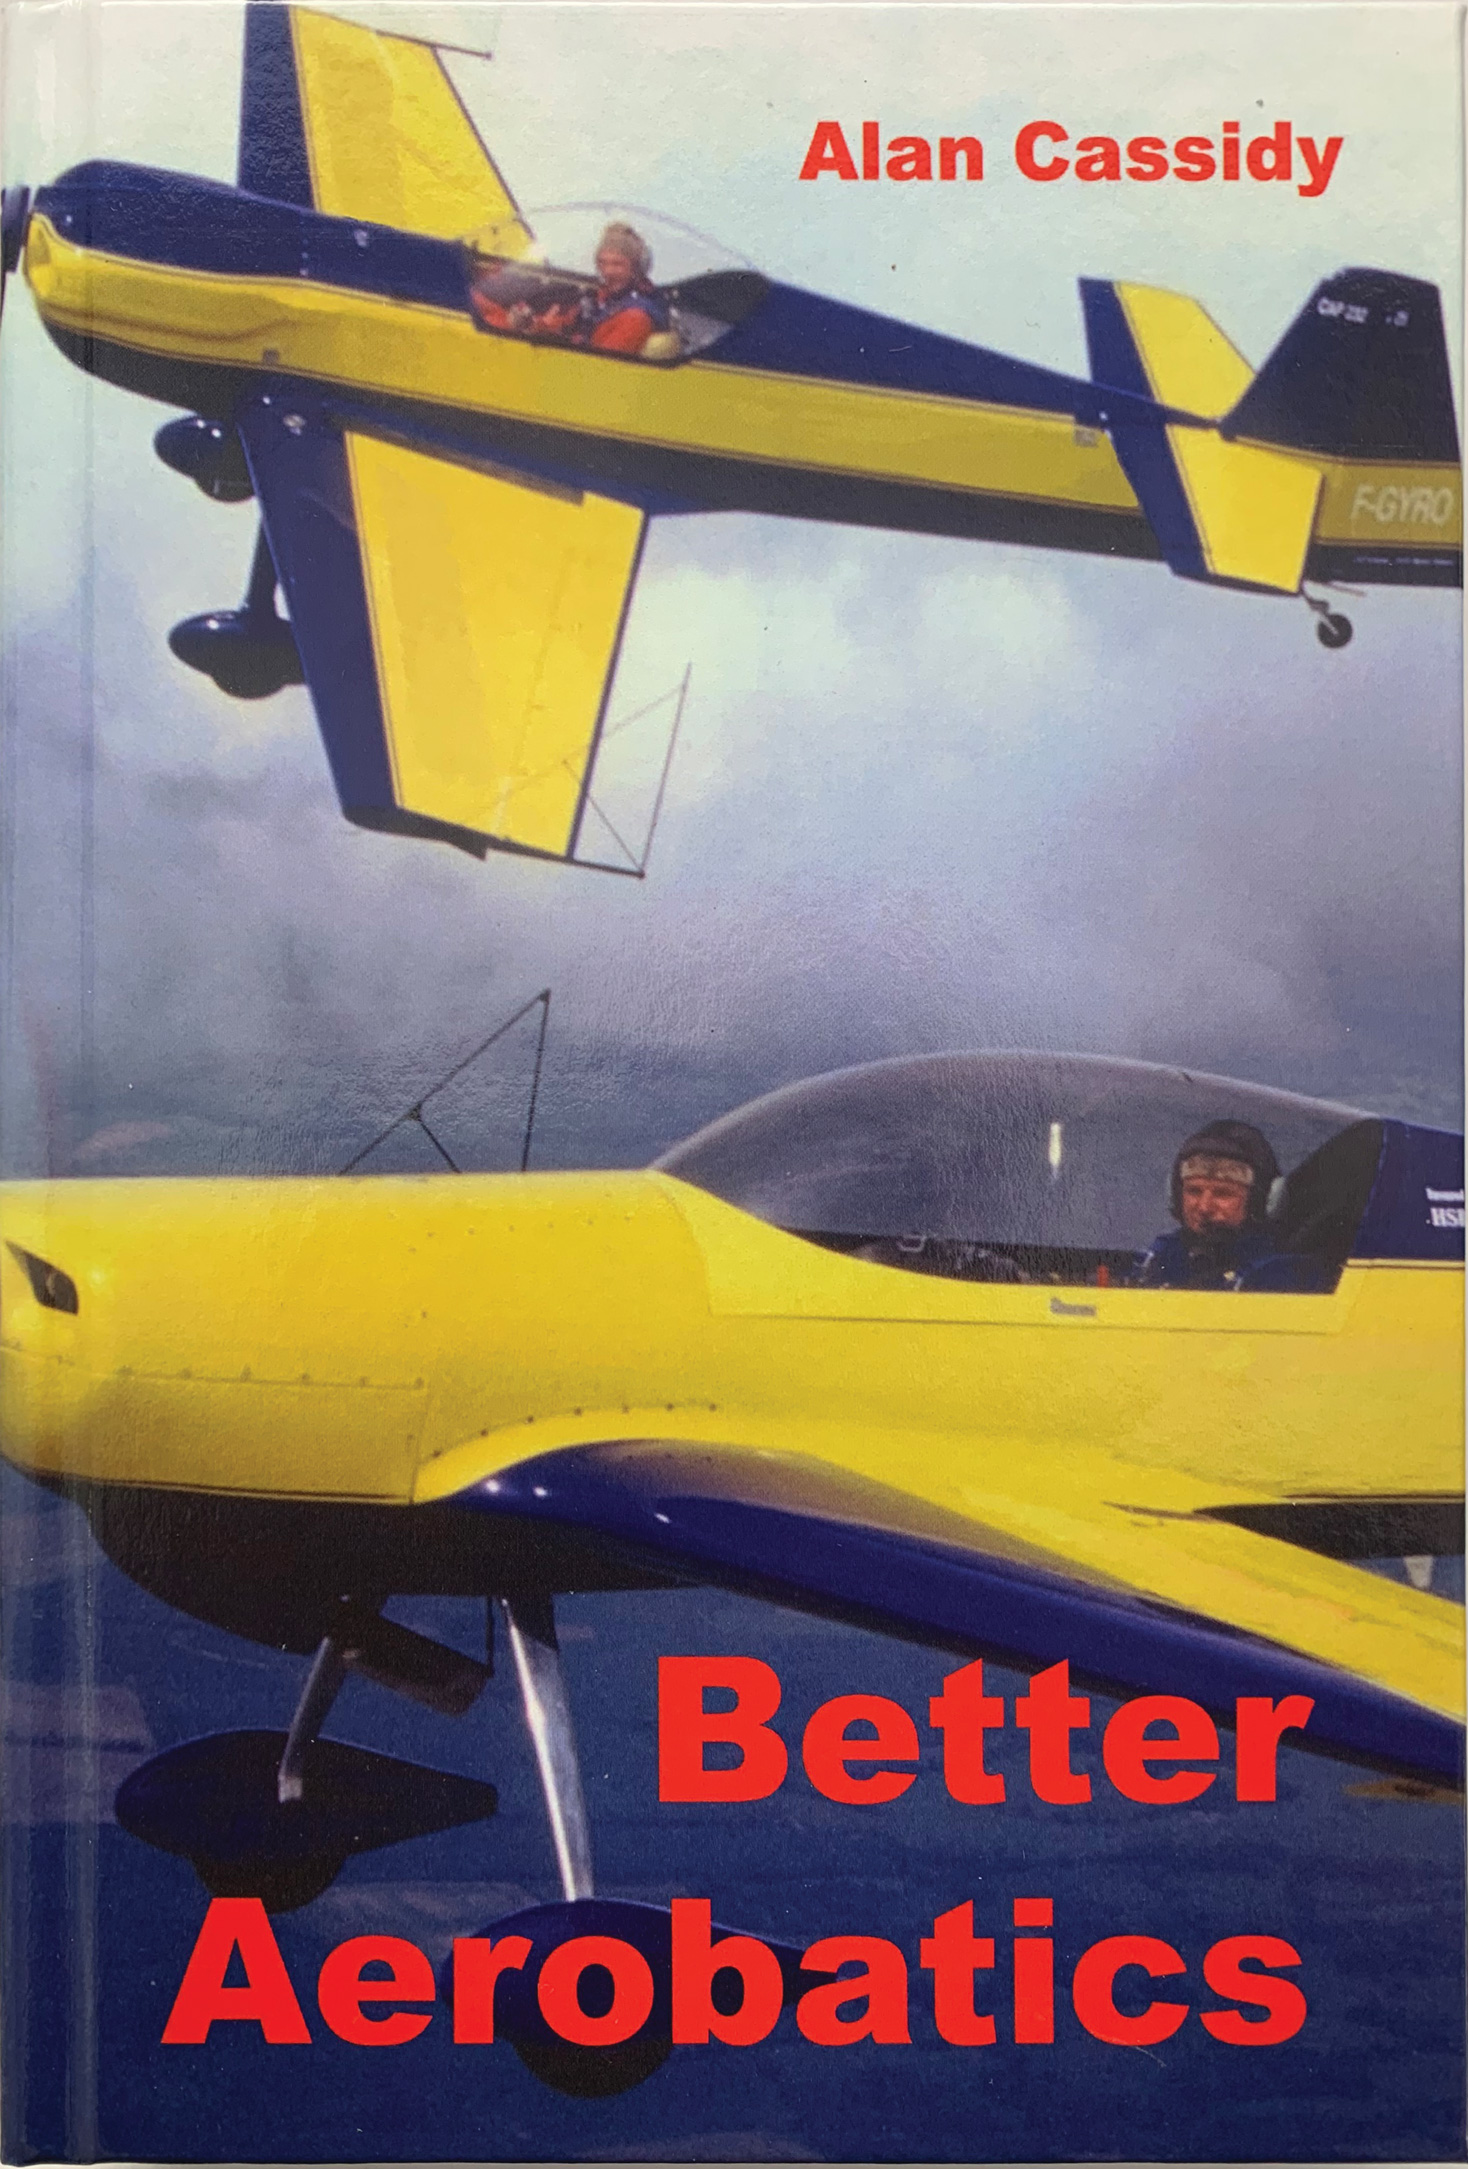 Better Aerobatics - Alan Cassidy